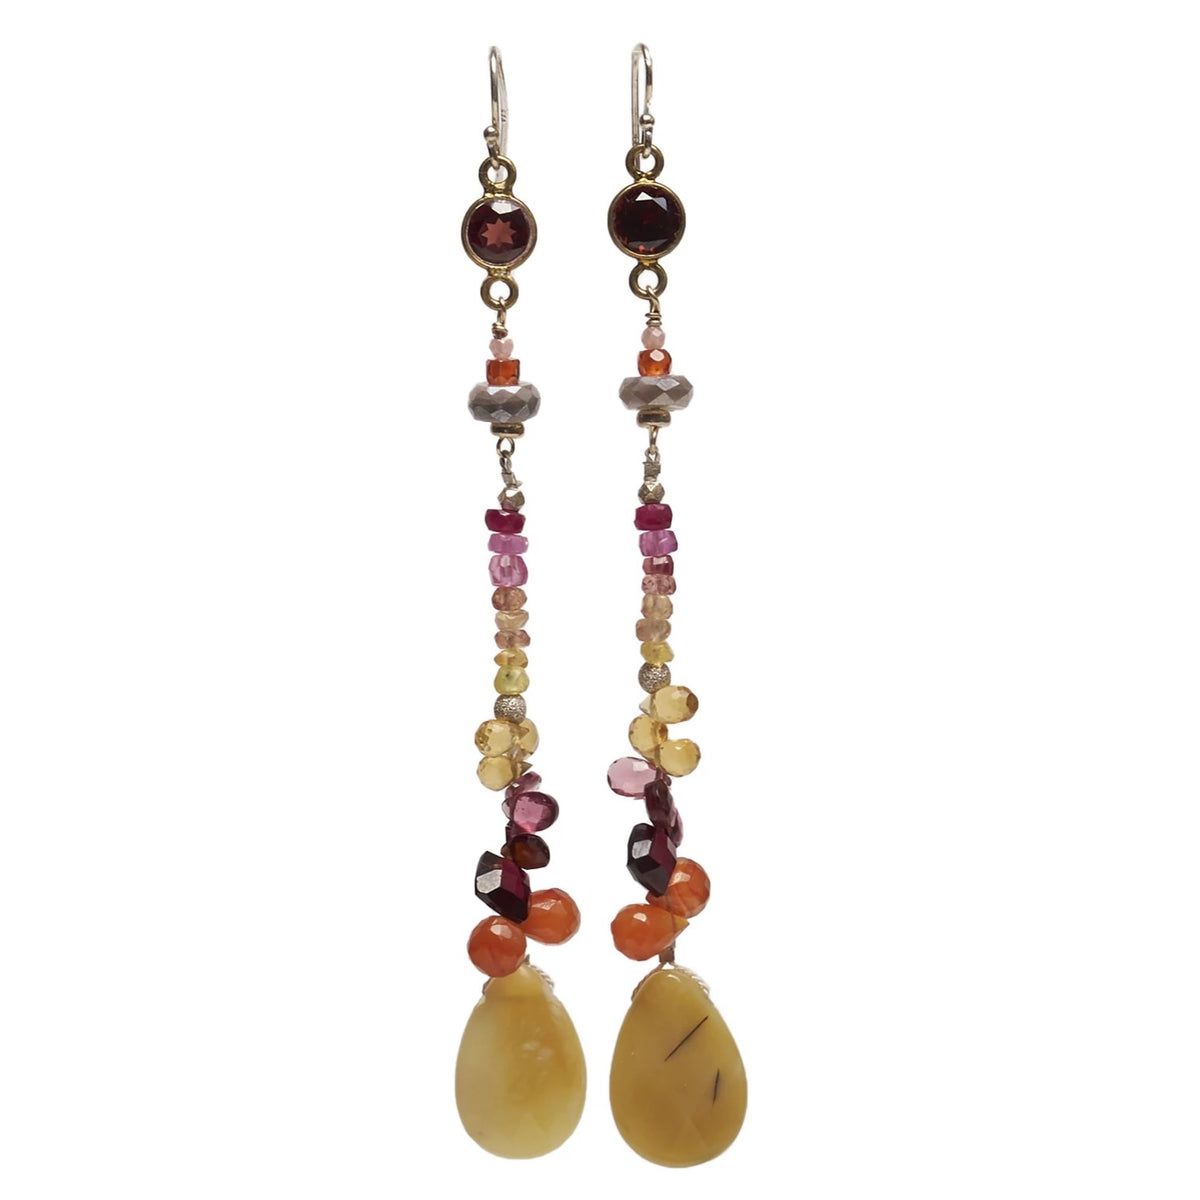 Long and Rubylicious earring